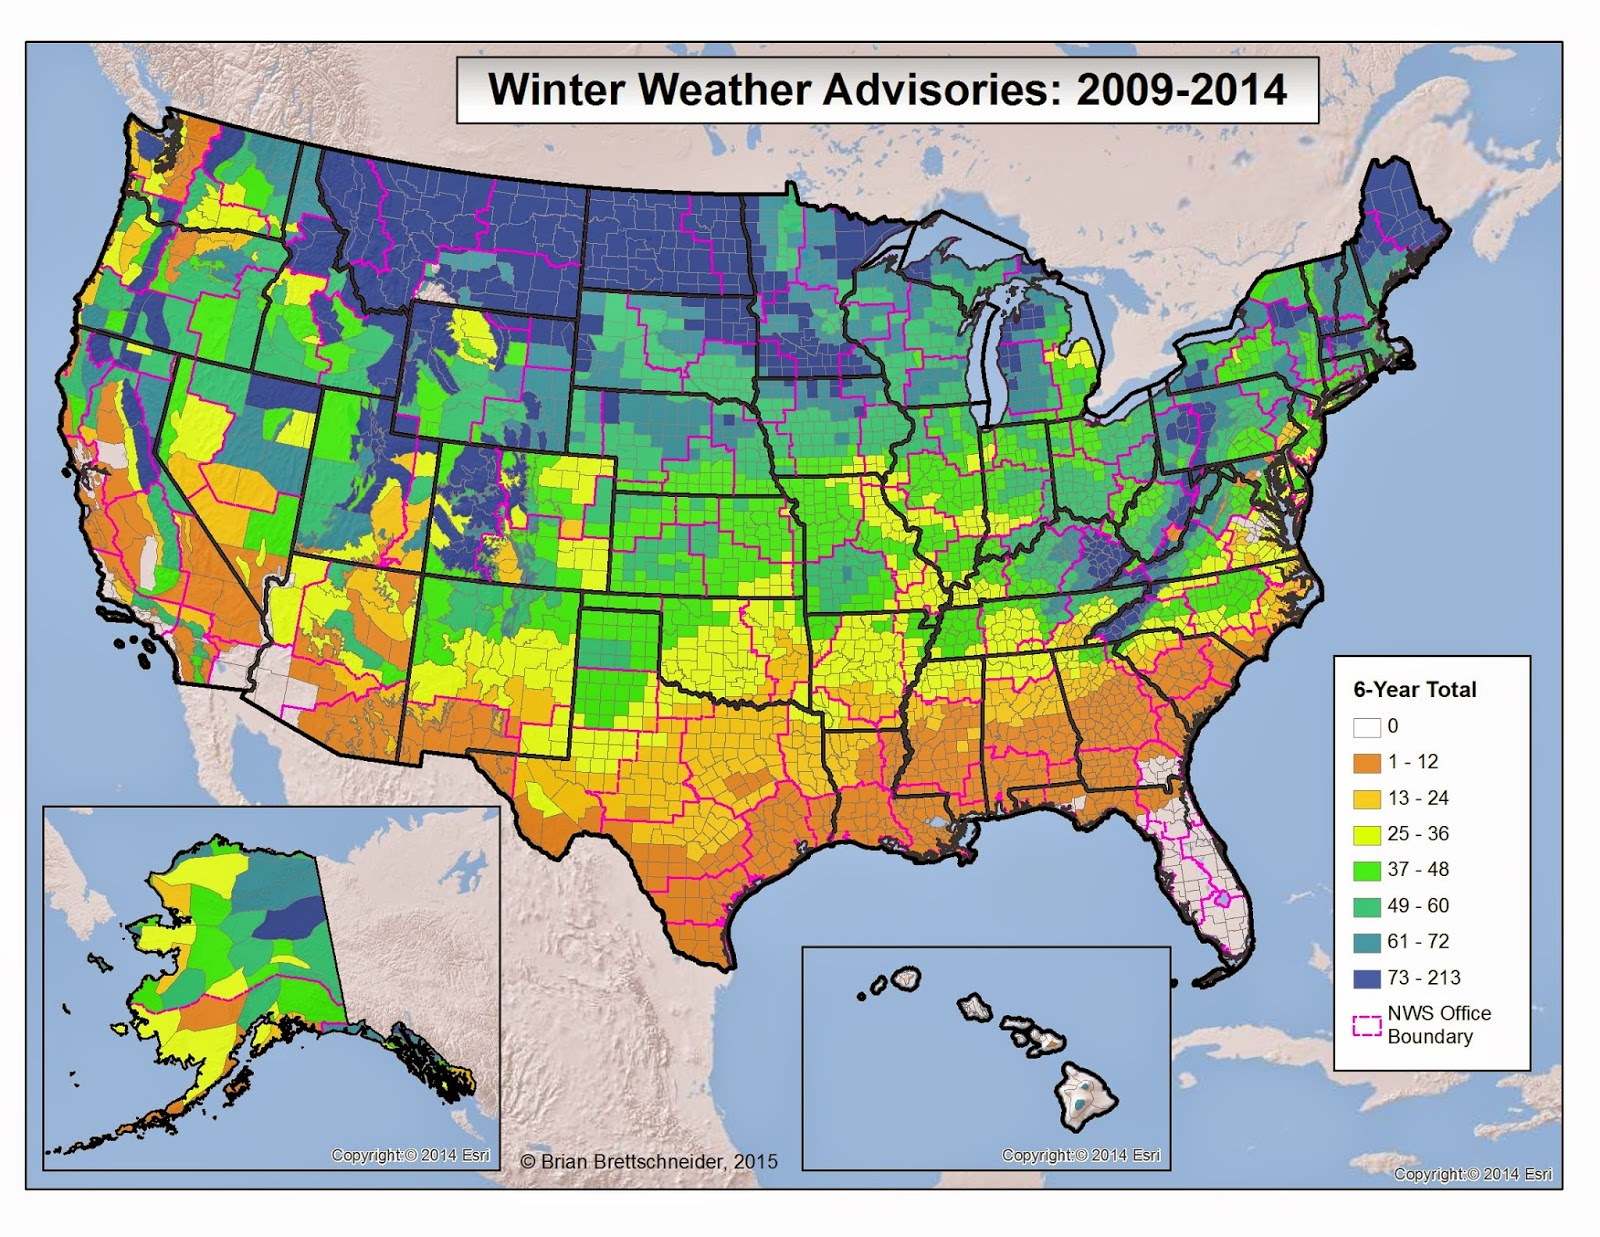 Brian Bs Climate Blog US Winter Weather Advisories And Warnings - Us weather by map